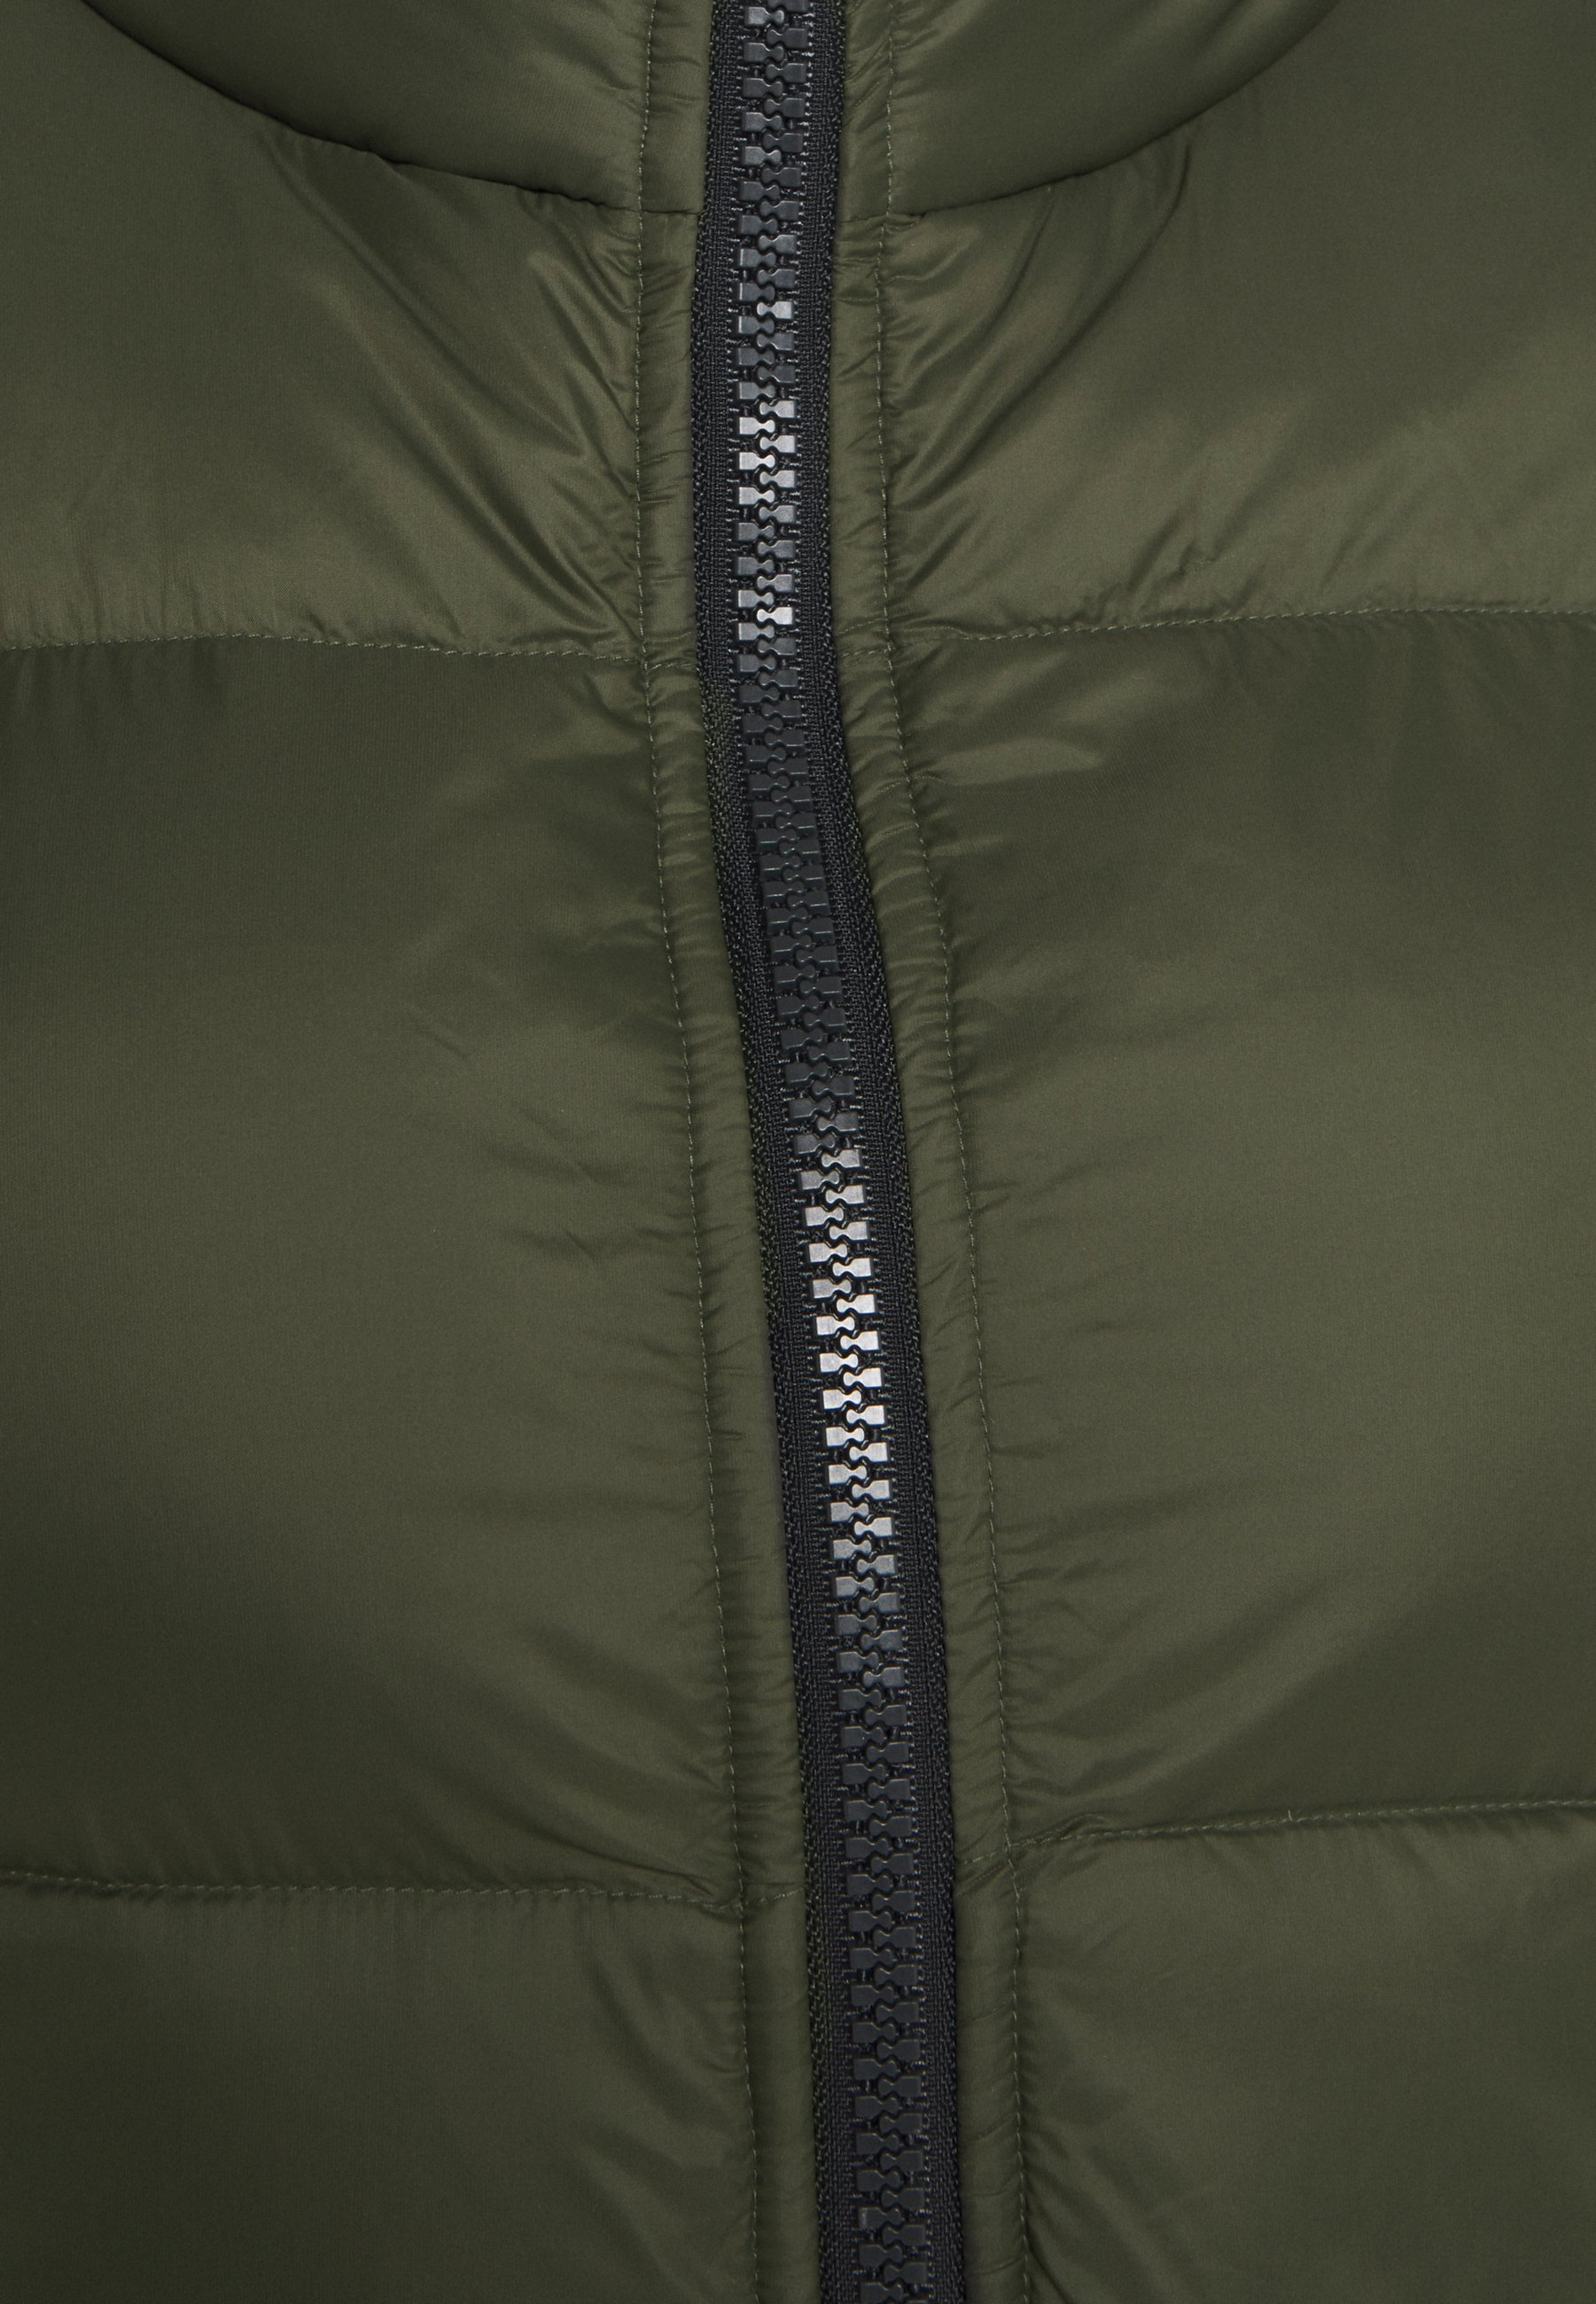 Under Armour SPORTSTYLE VEST - Waistcoat - baroque green Vp0eY